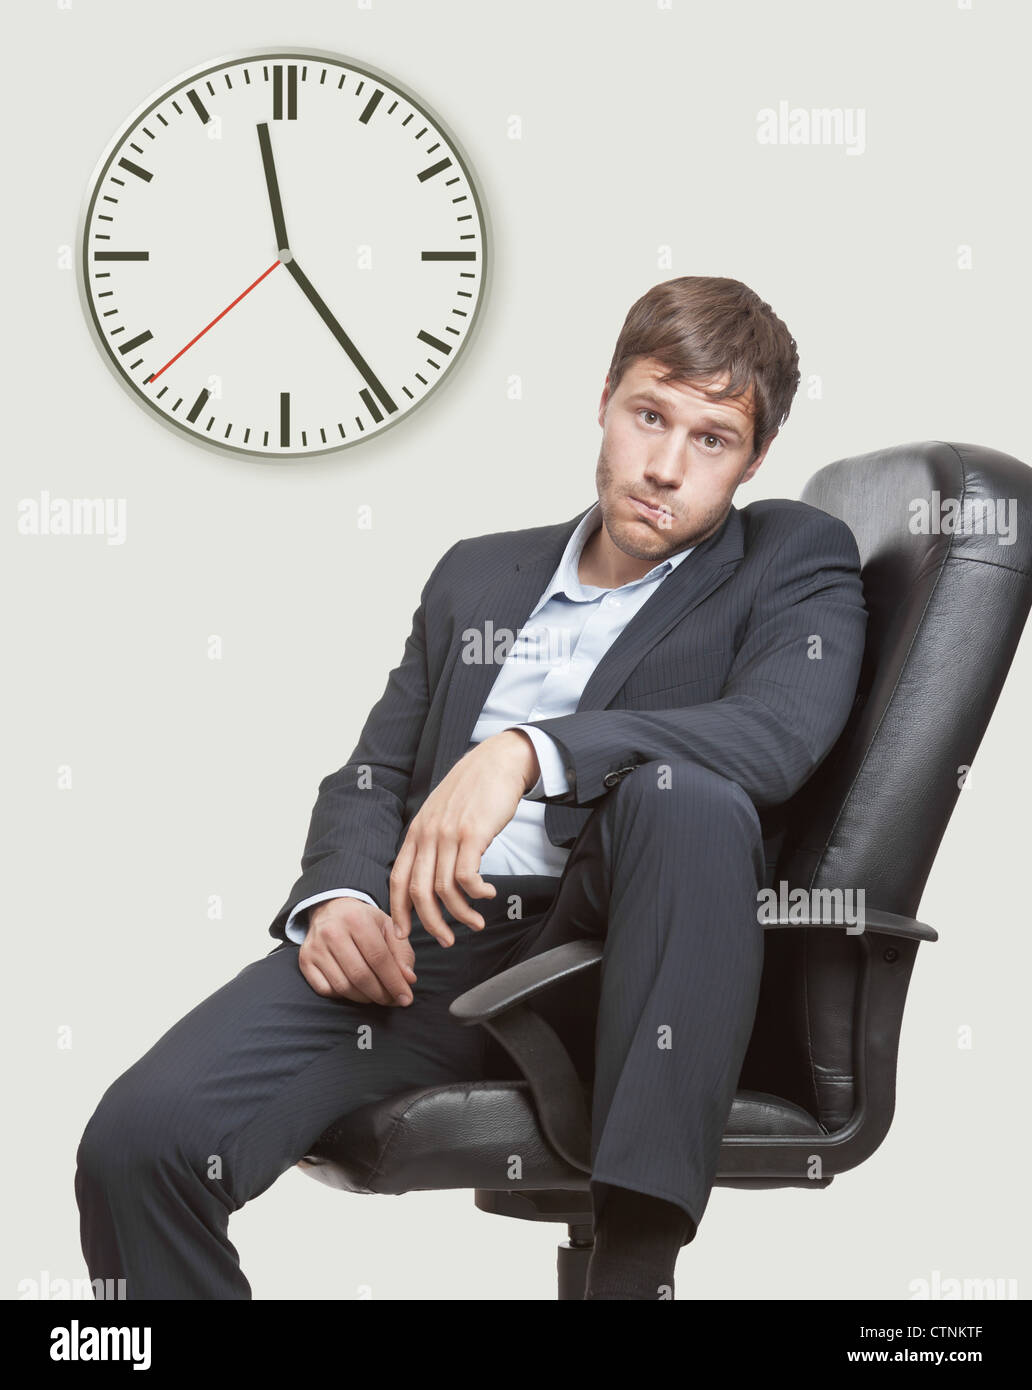 Frustrated office worker on the phone holding stock photo image - Frustrated Young Business Man Waiting For The End Of The Workday